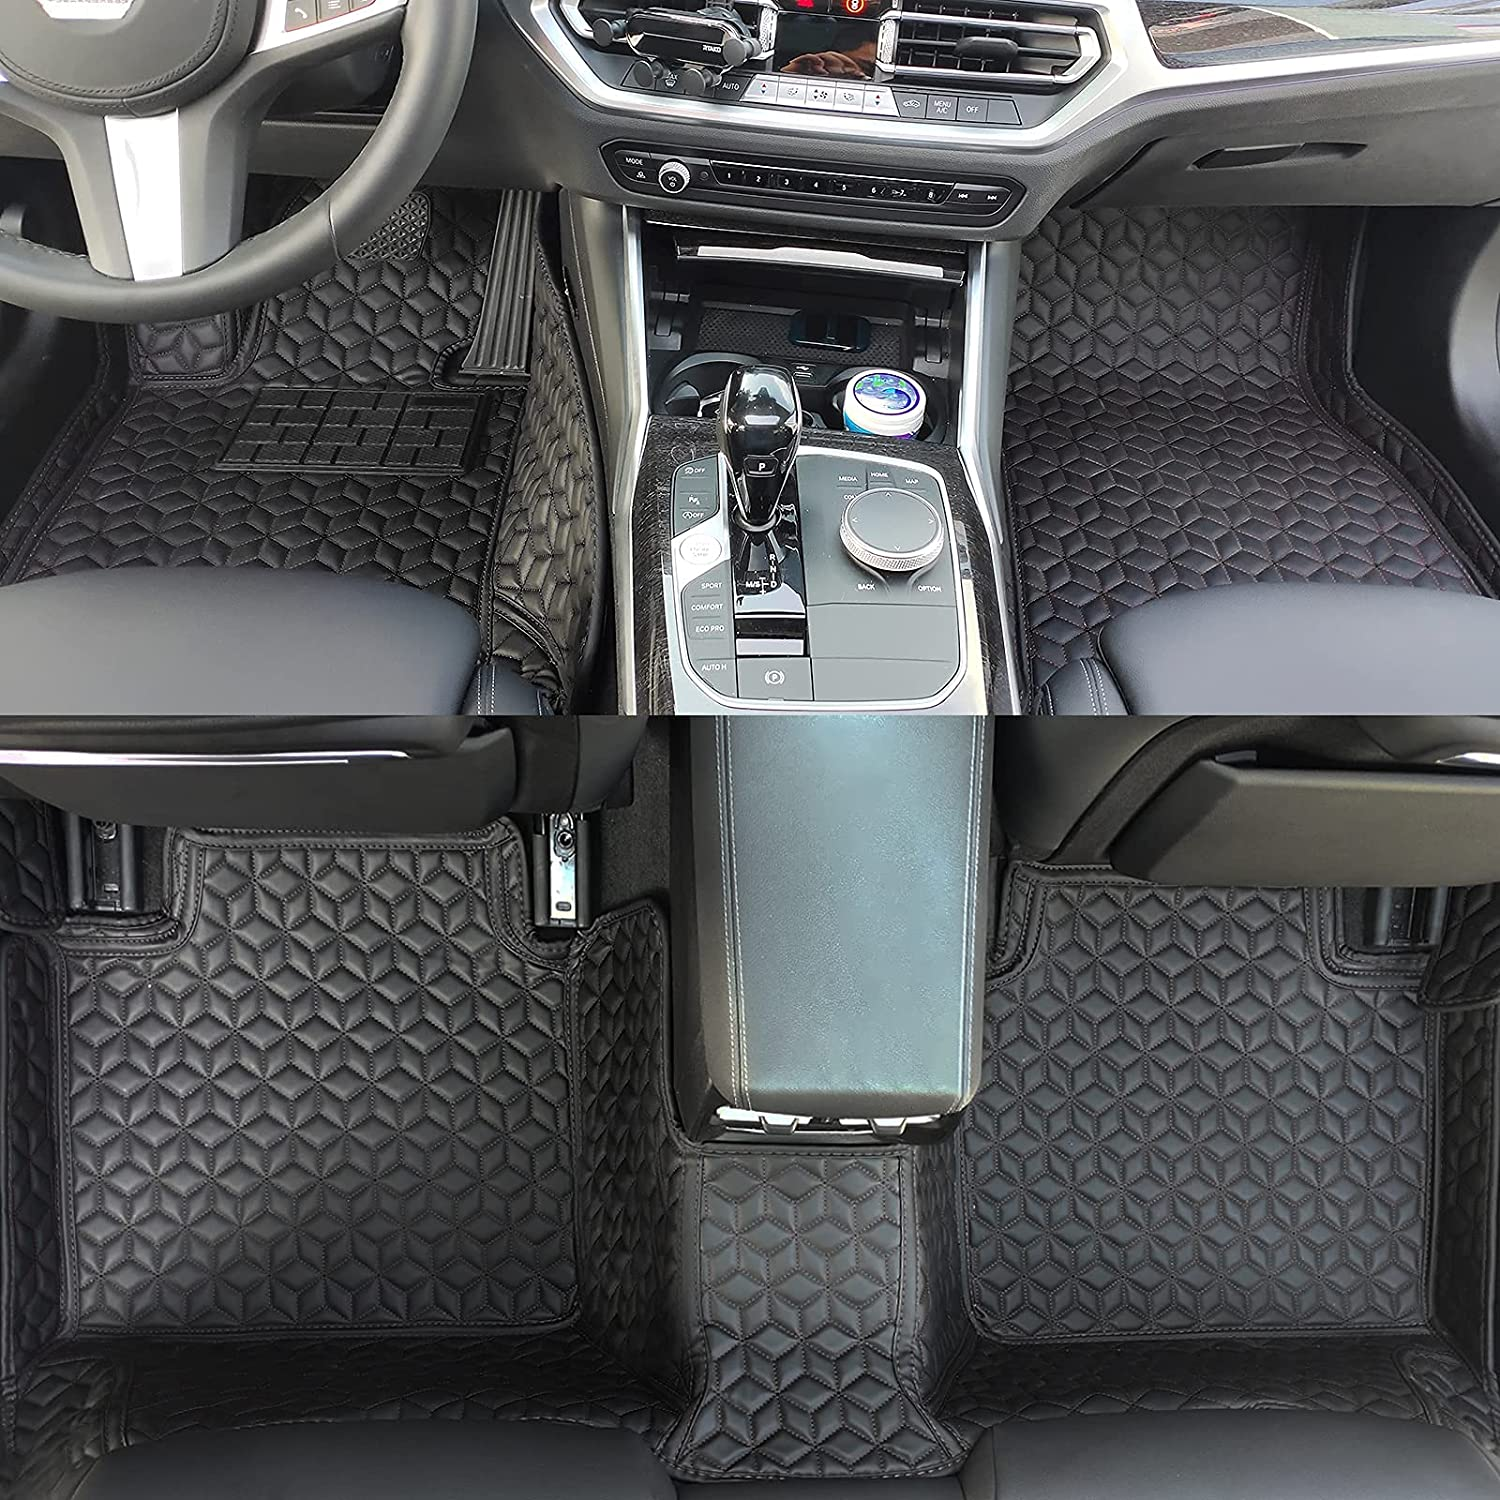 Muchkey Upgrade PU Leather Car Floor Mats fit 20 Limited time for free shipping B X5 E53 MW Max 80% OFF for